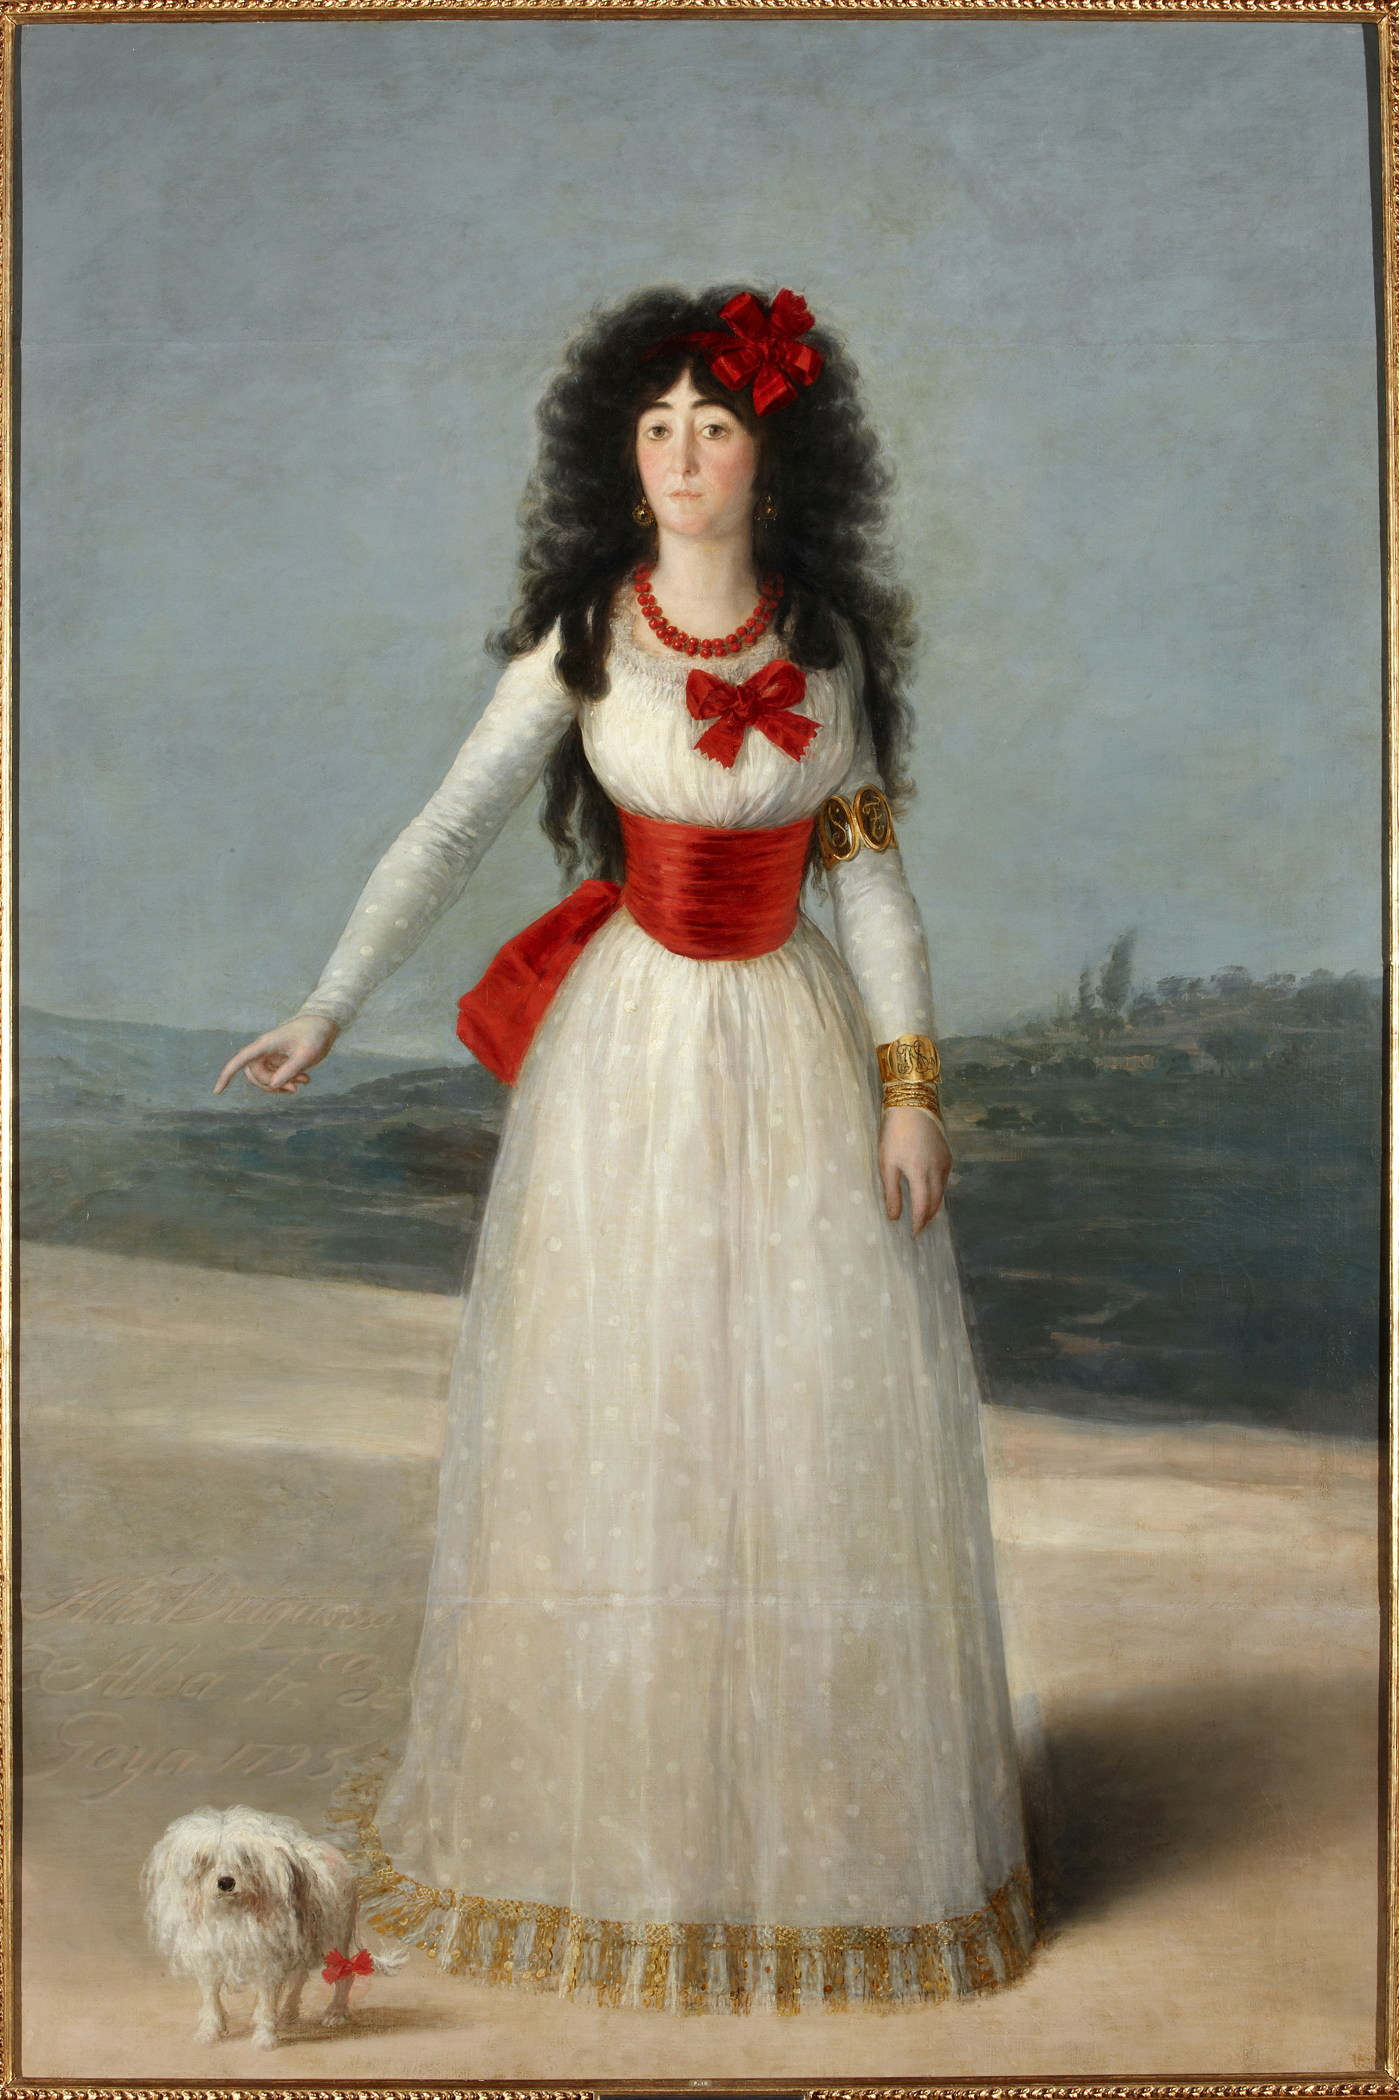 Francisco de Goya y Lucientes (Spanish, 1746-1828), The Duchess of Alba in White, 1795. Oil on canvas. Colección Duques de Alba, Palacio de Liria, Madrid.